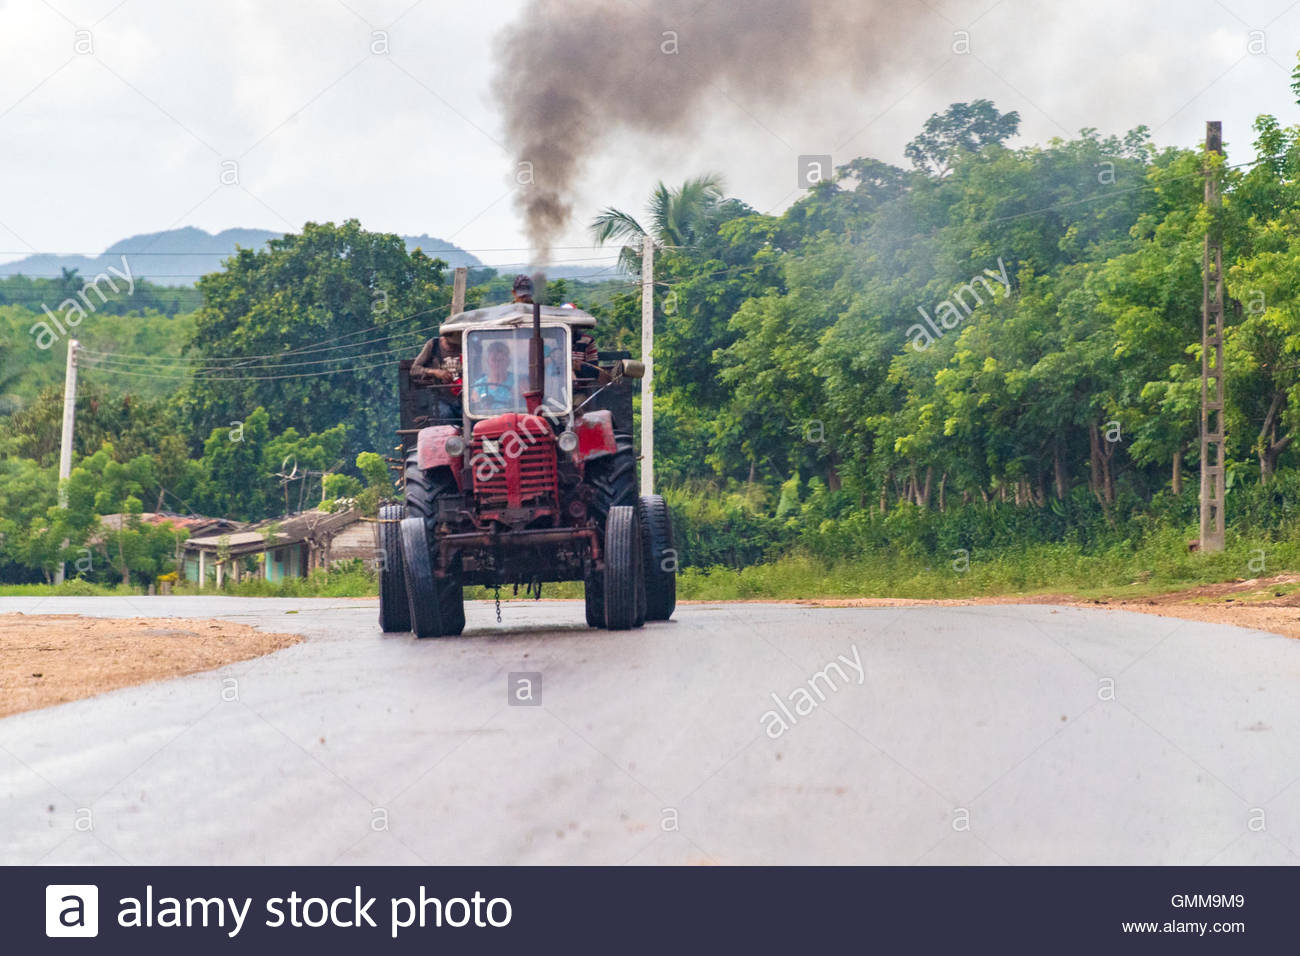 Vintage old Russian agricultural tractor riding on the countryside's main street. - Stock Image